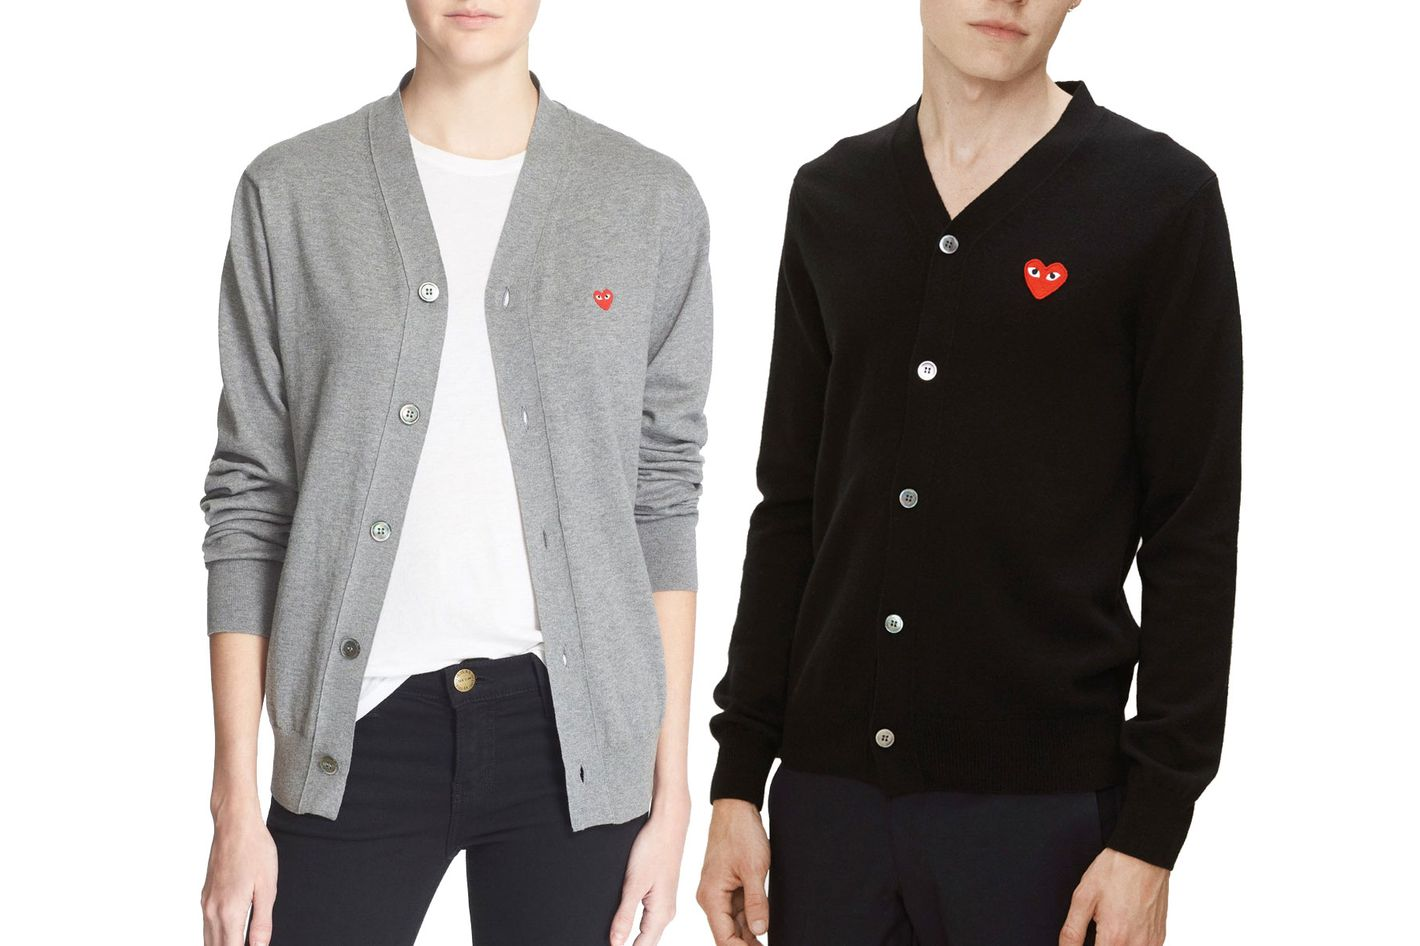 e74aea15a4e6 Comme Des Garcons Play Cotton Cardigan